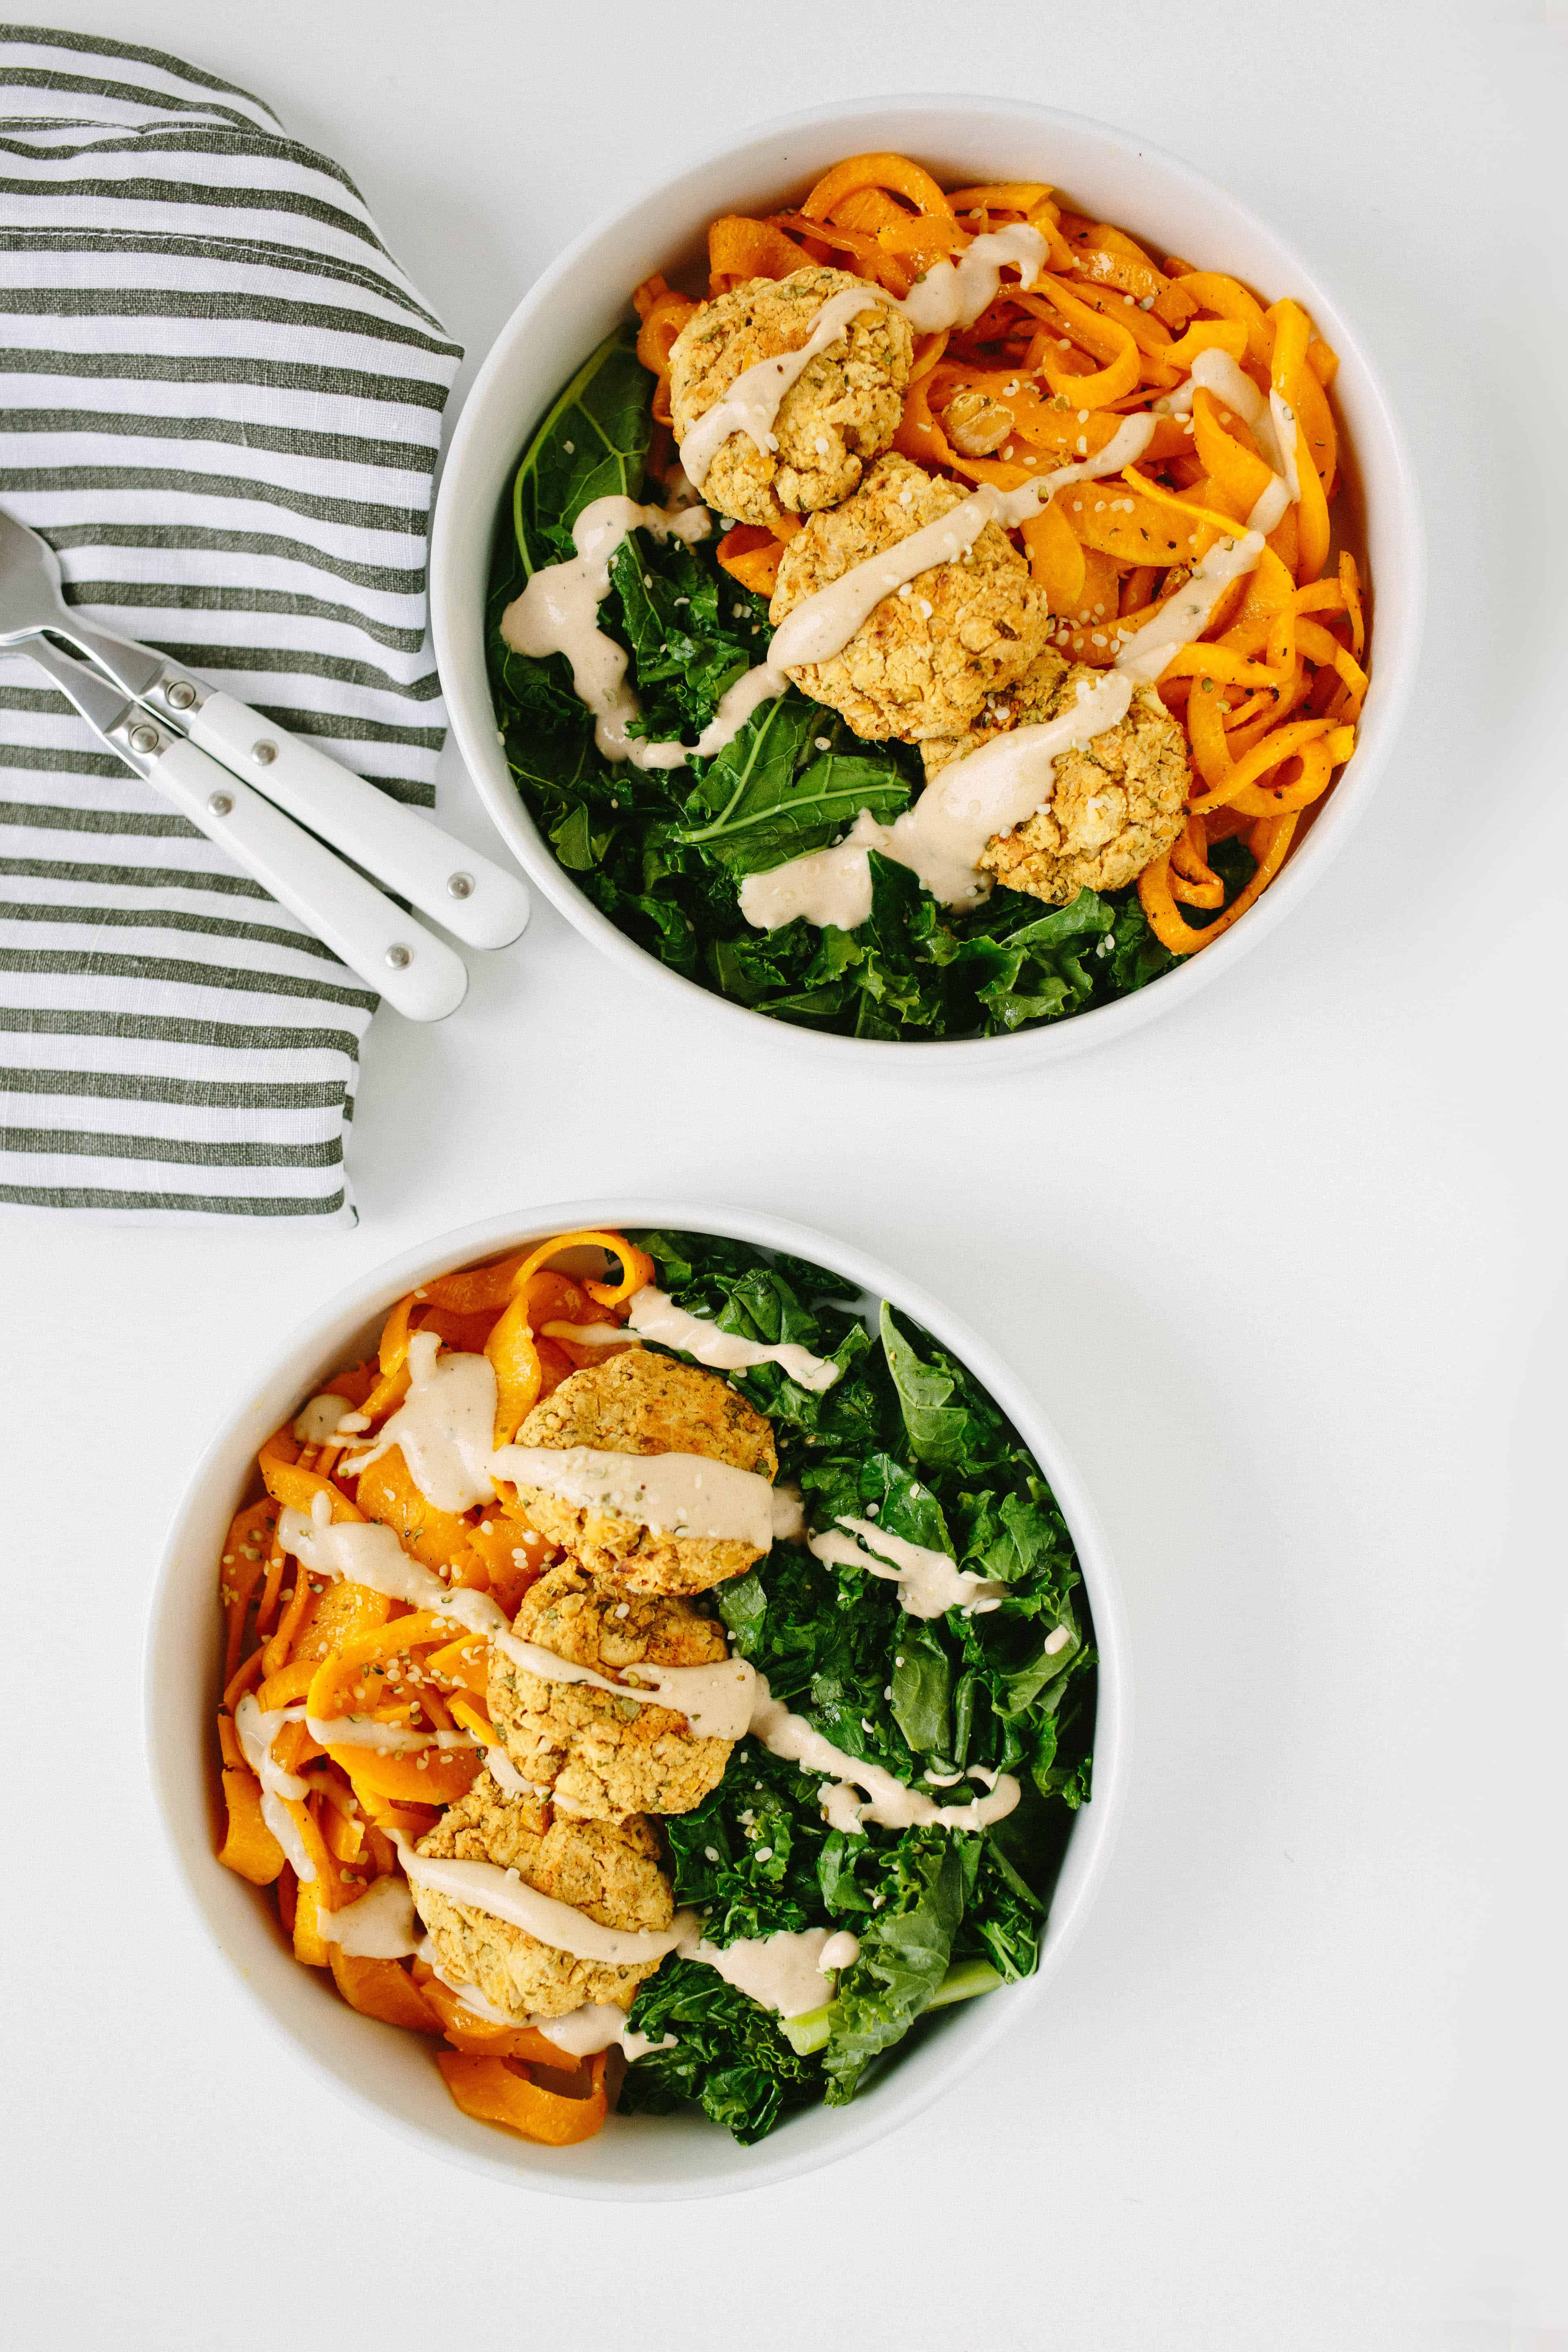 Kale and Falafel Bowls with Spiralized Butternut Squash